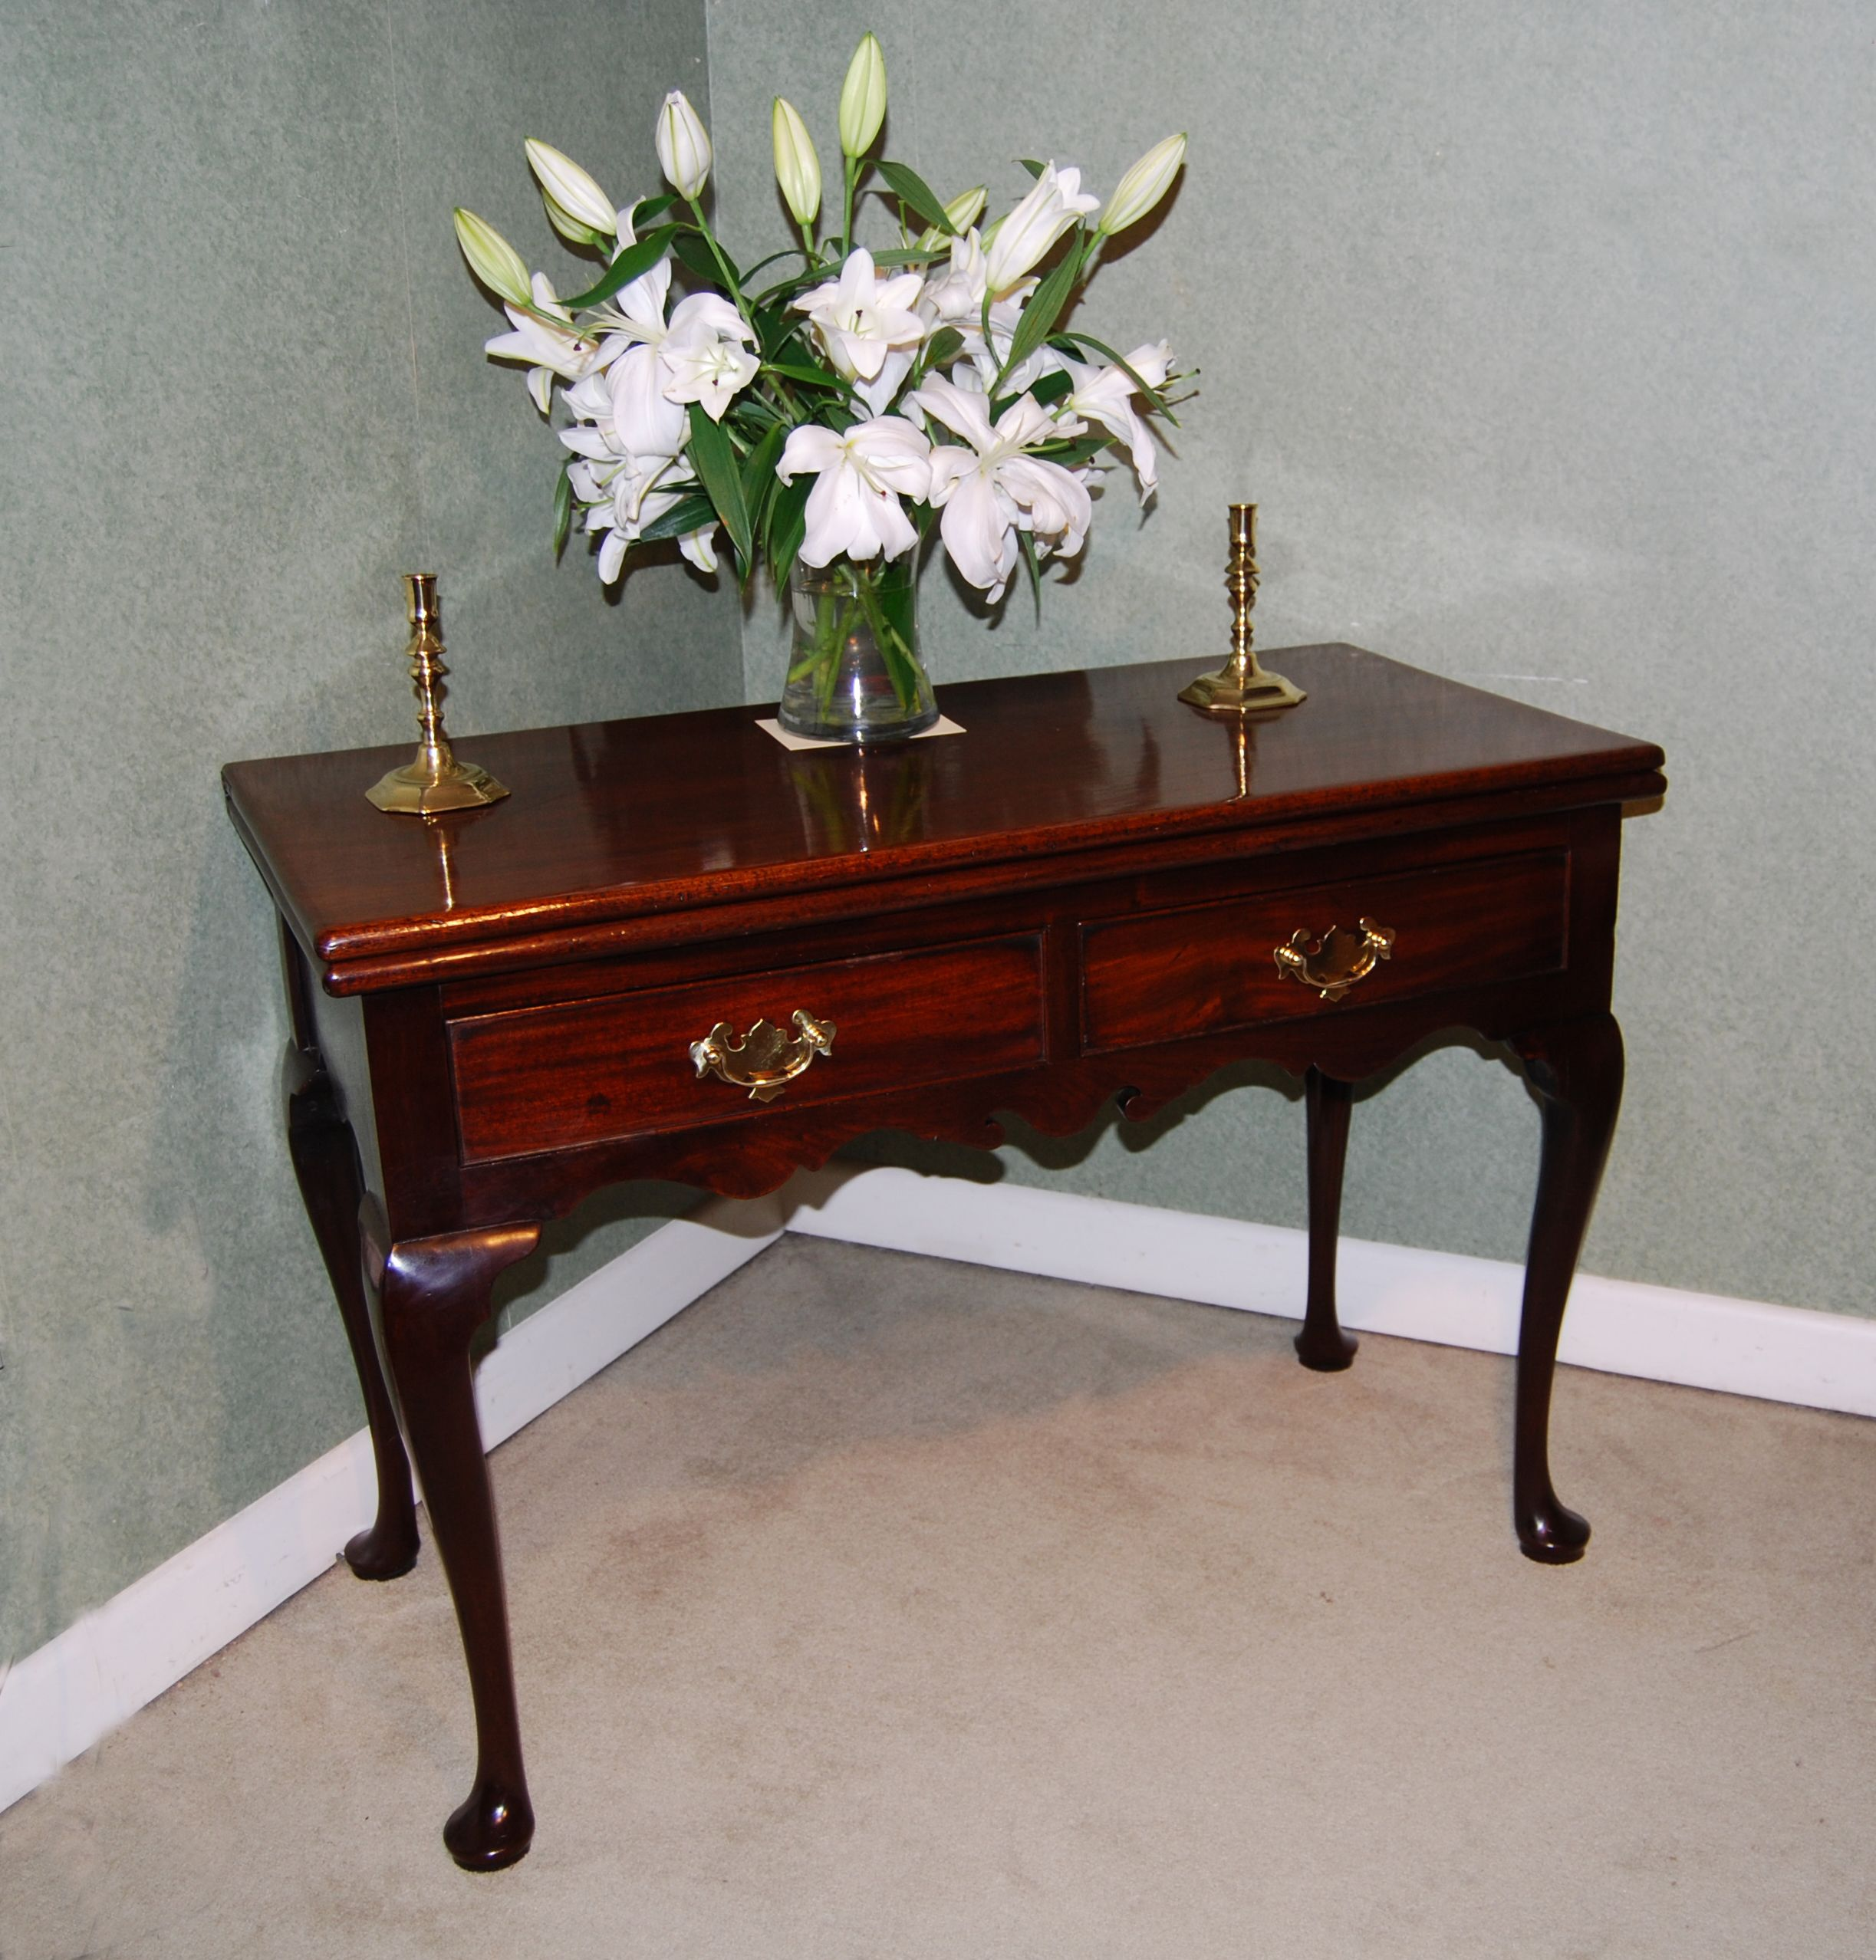 rare quality cuban mahogany fold over top tea table with two drawers